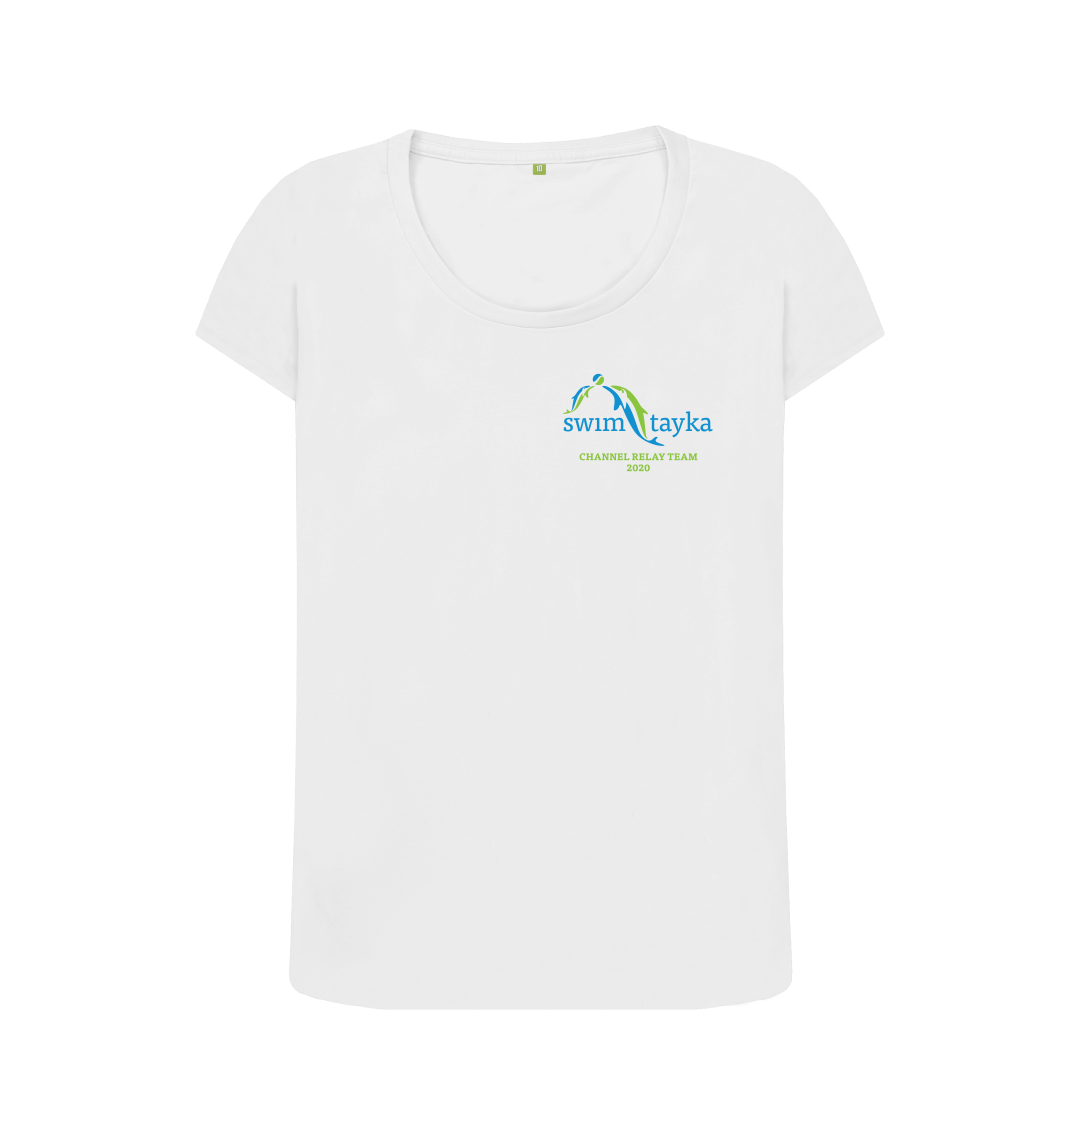 SwimTayka Women's T-shirt - Channel Swim 2020